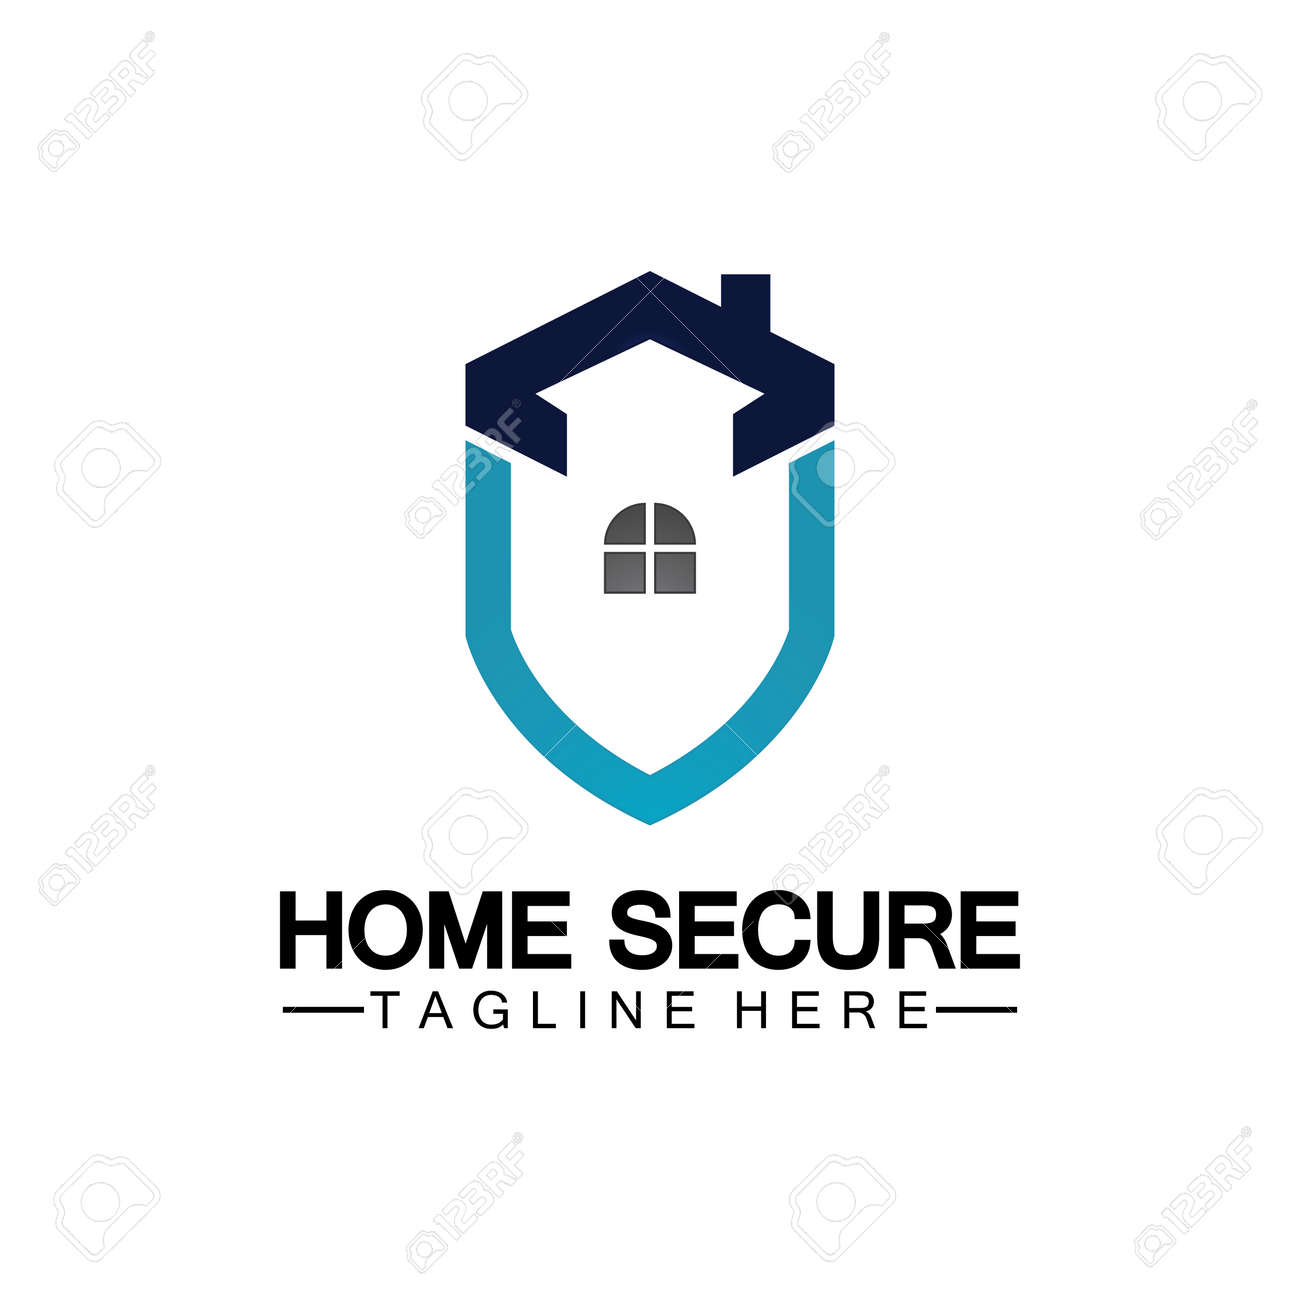 Home secure logo, smart house logo design,Home protection logo design template. Vector shield and house logotype illustration. - 168550070